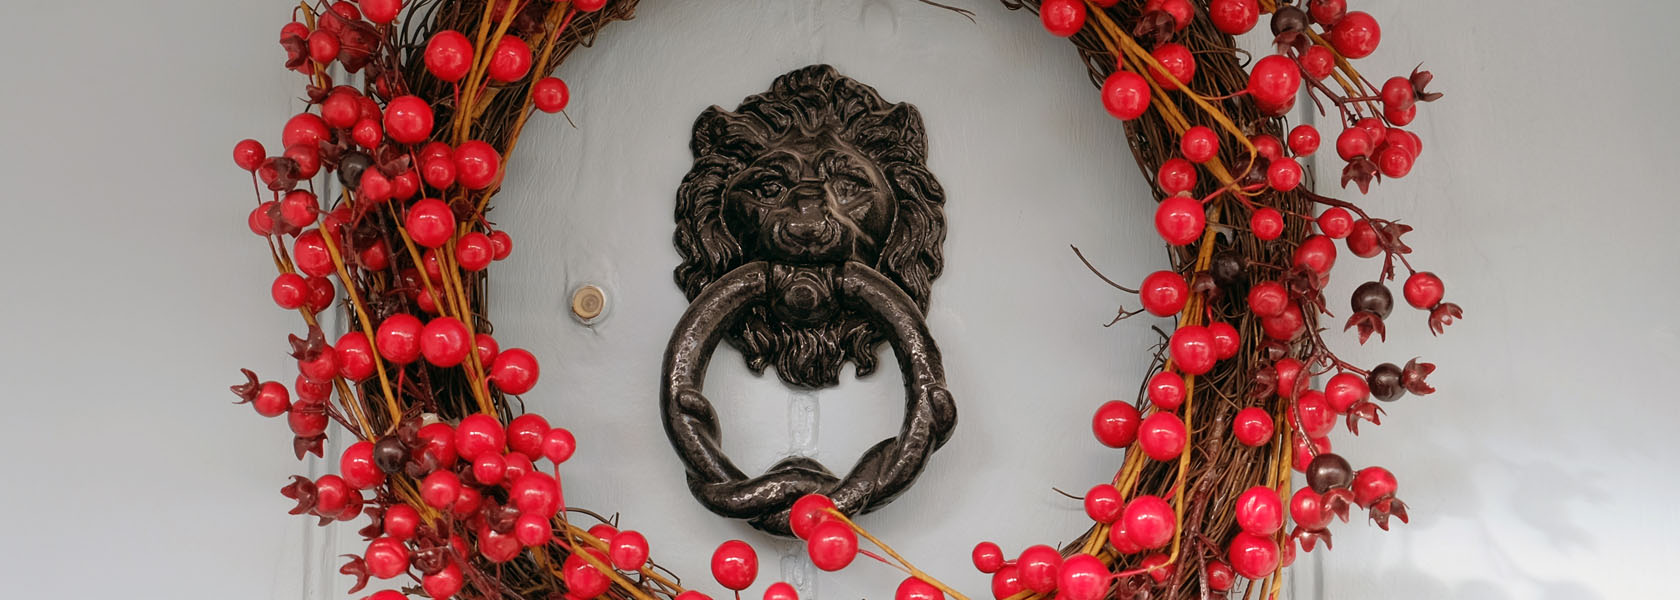 Door_Knocker_Wreath_1680px